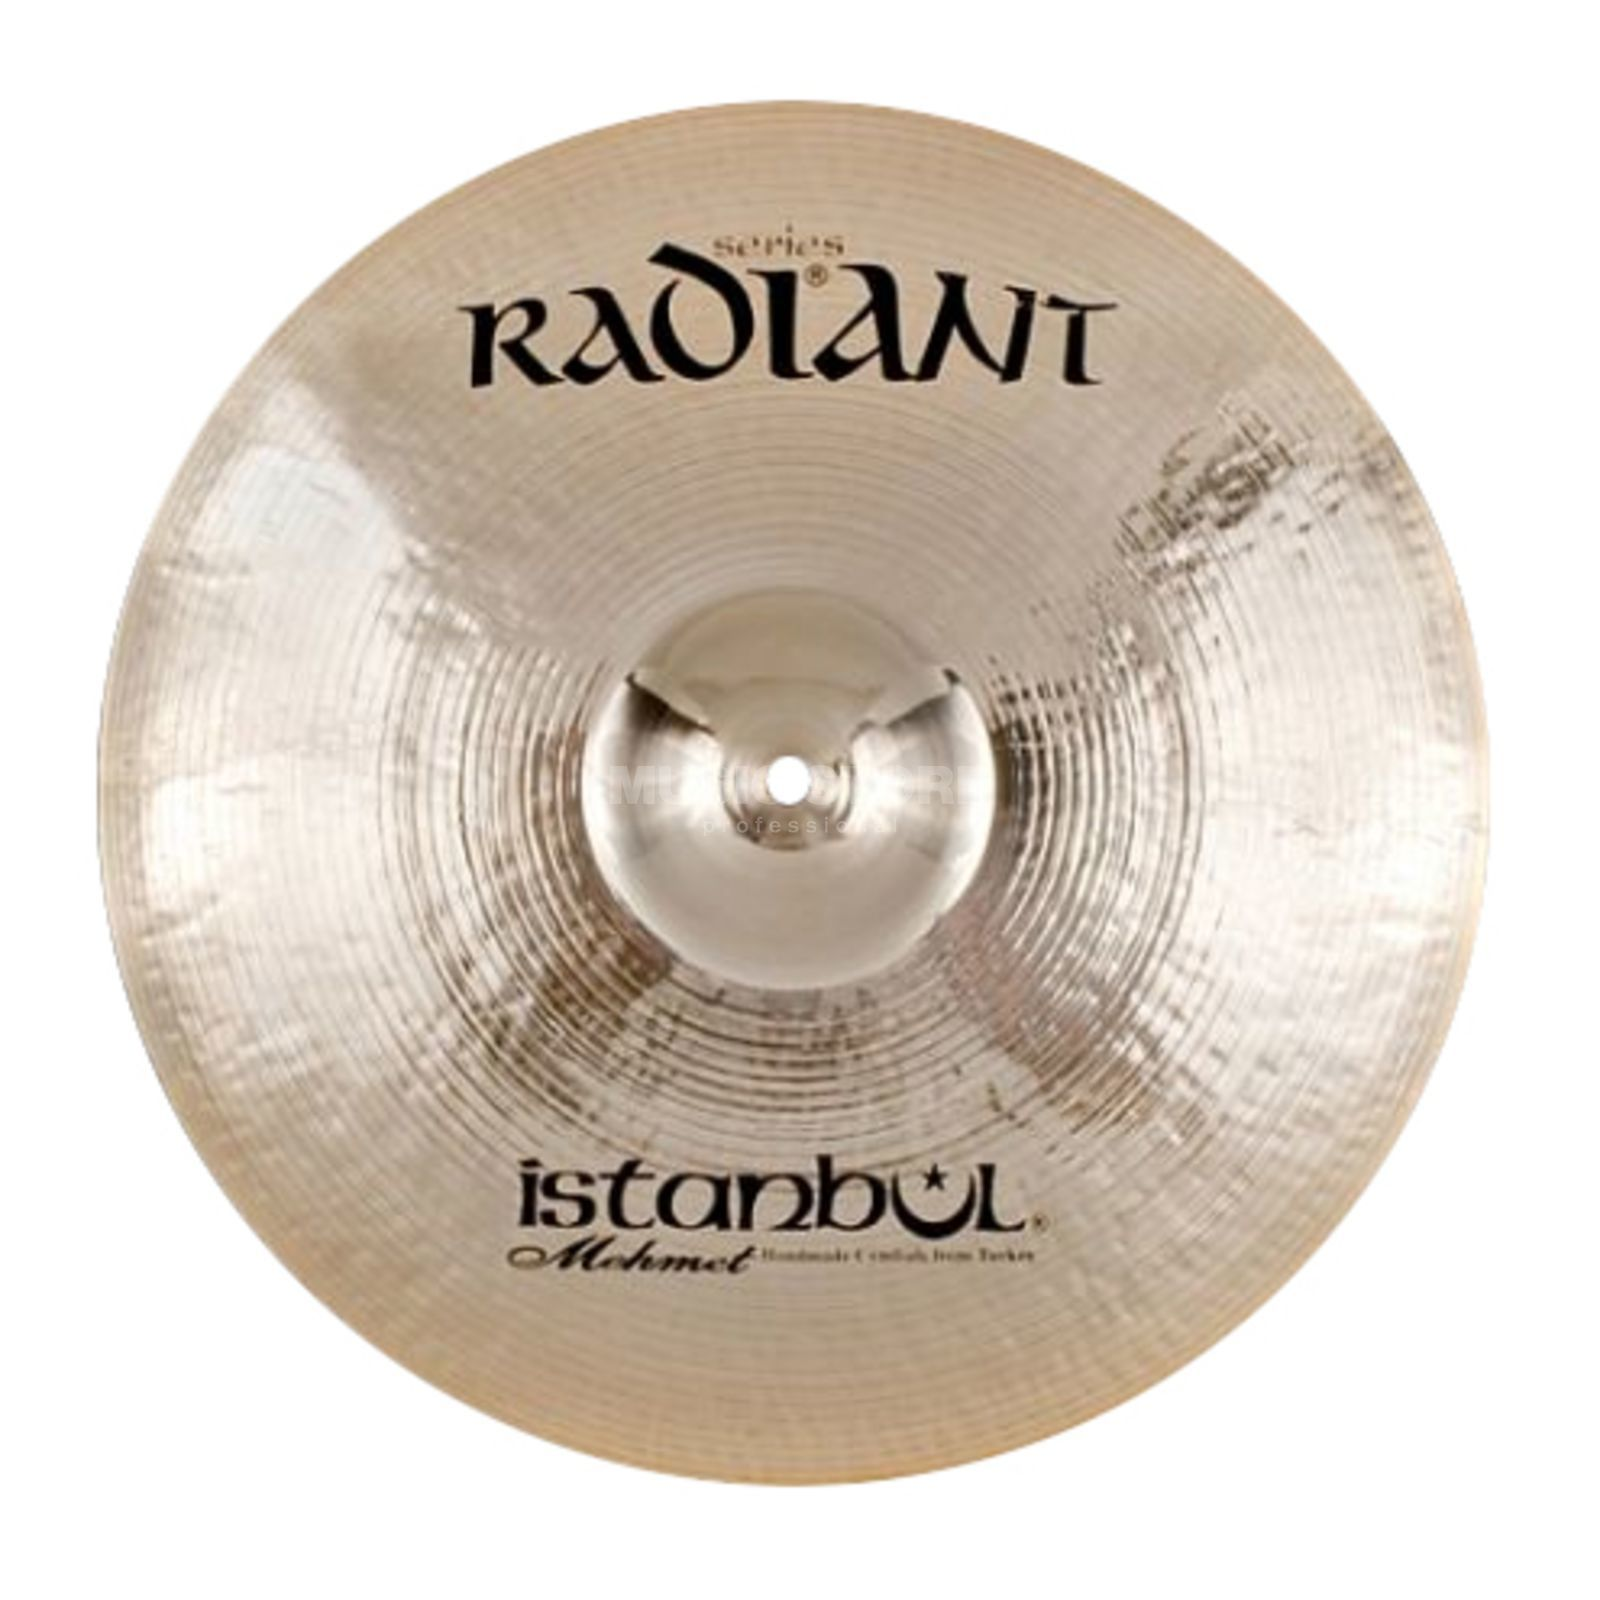 "Istanbul Radiant Sweet Thin Crash 17"", R-CSW18 Product Image"